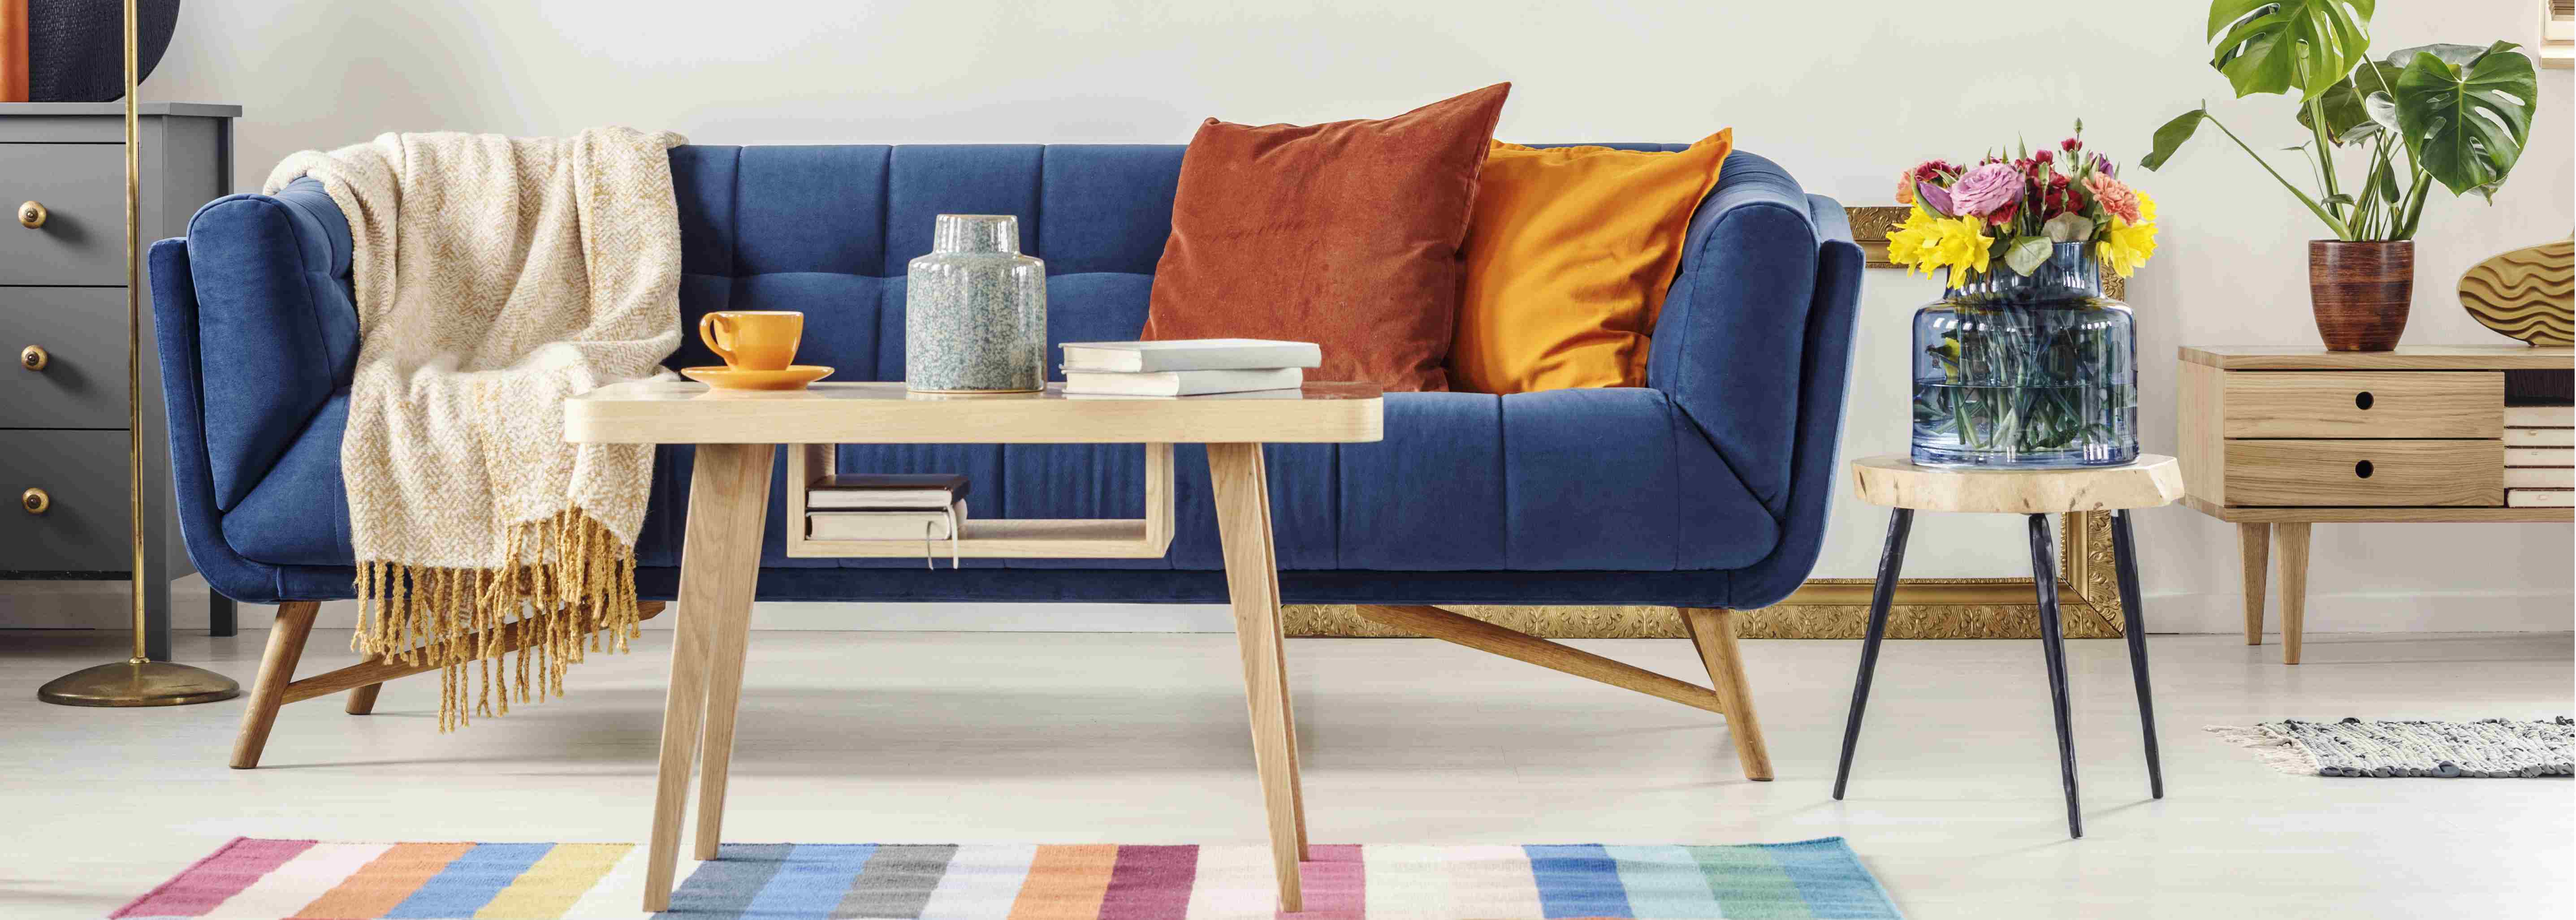 blue settee with orange pillows